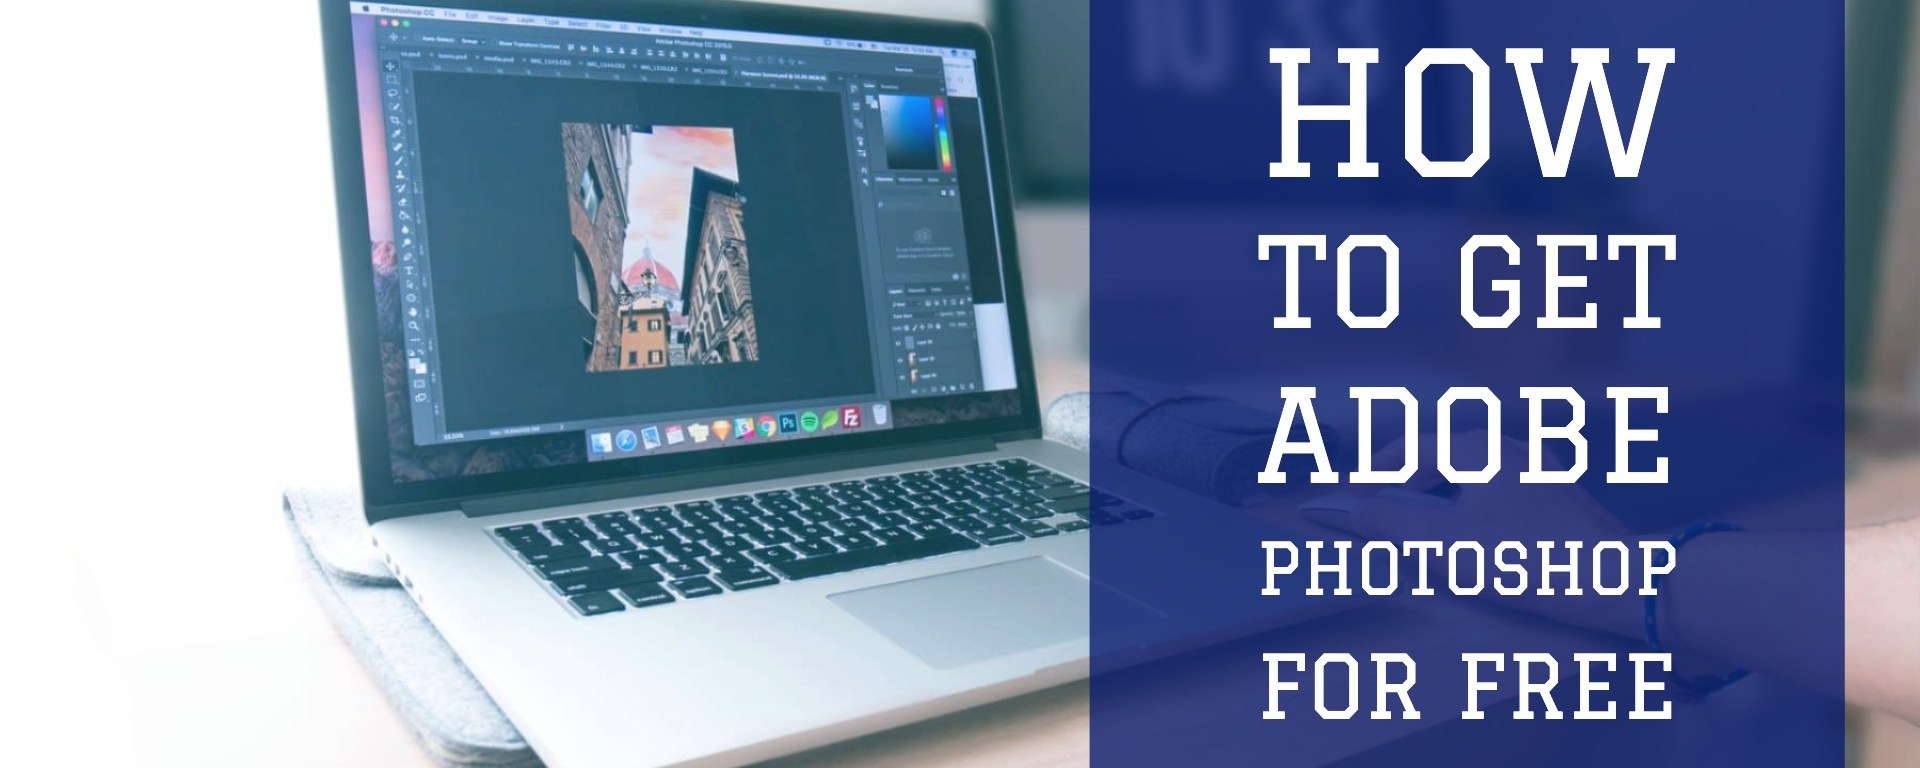 How to get Adobe Photoshop for free and legally? | TechRev me